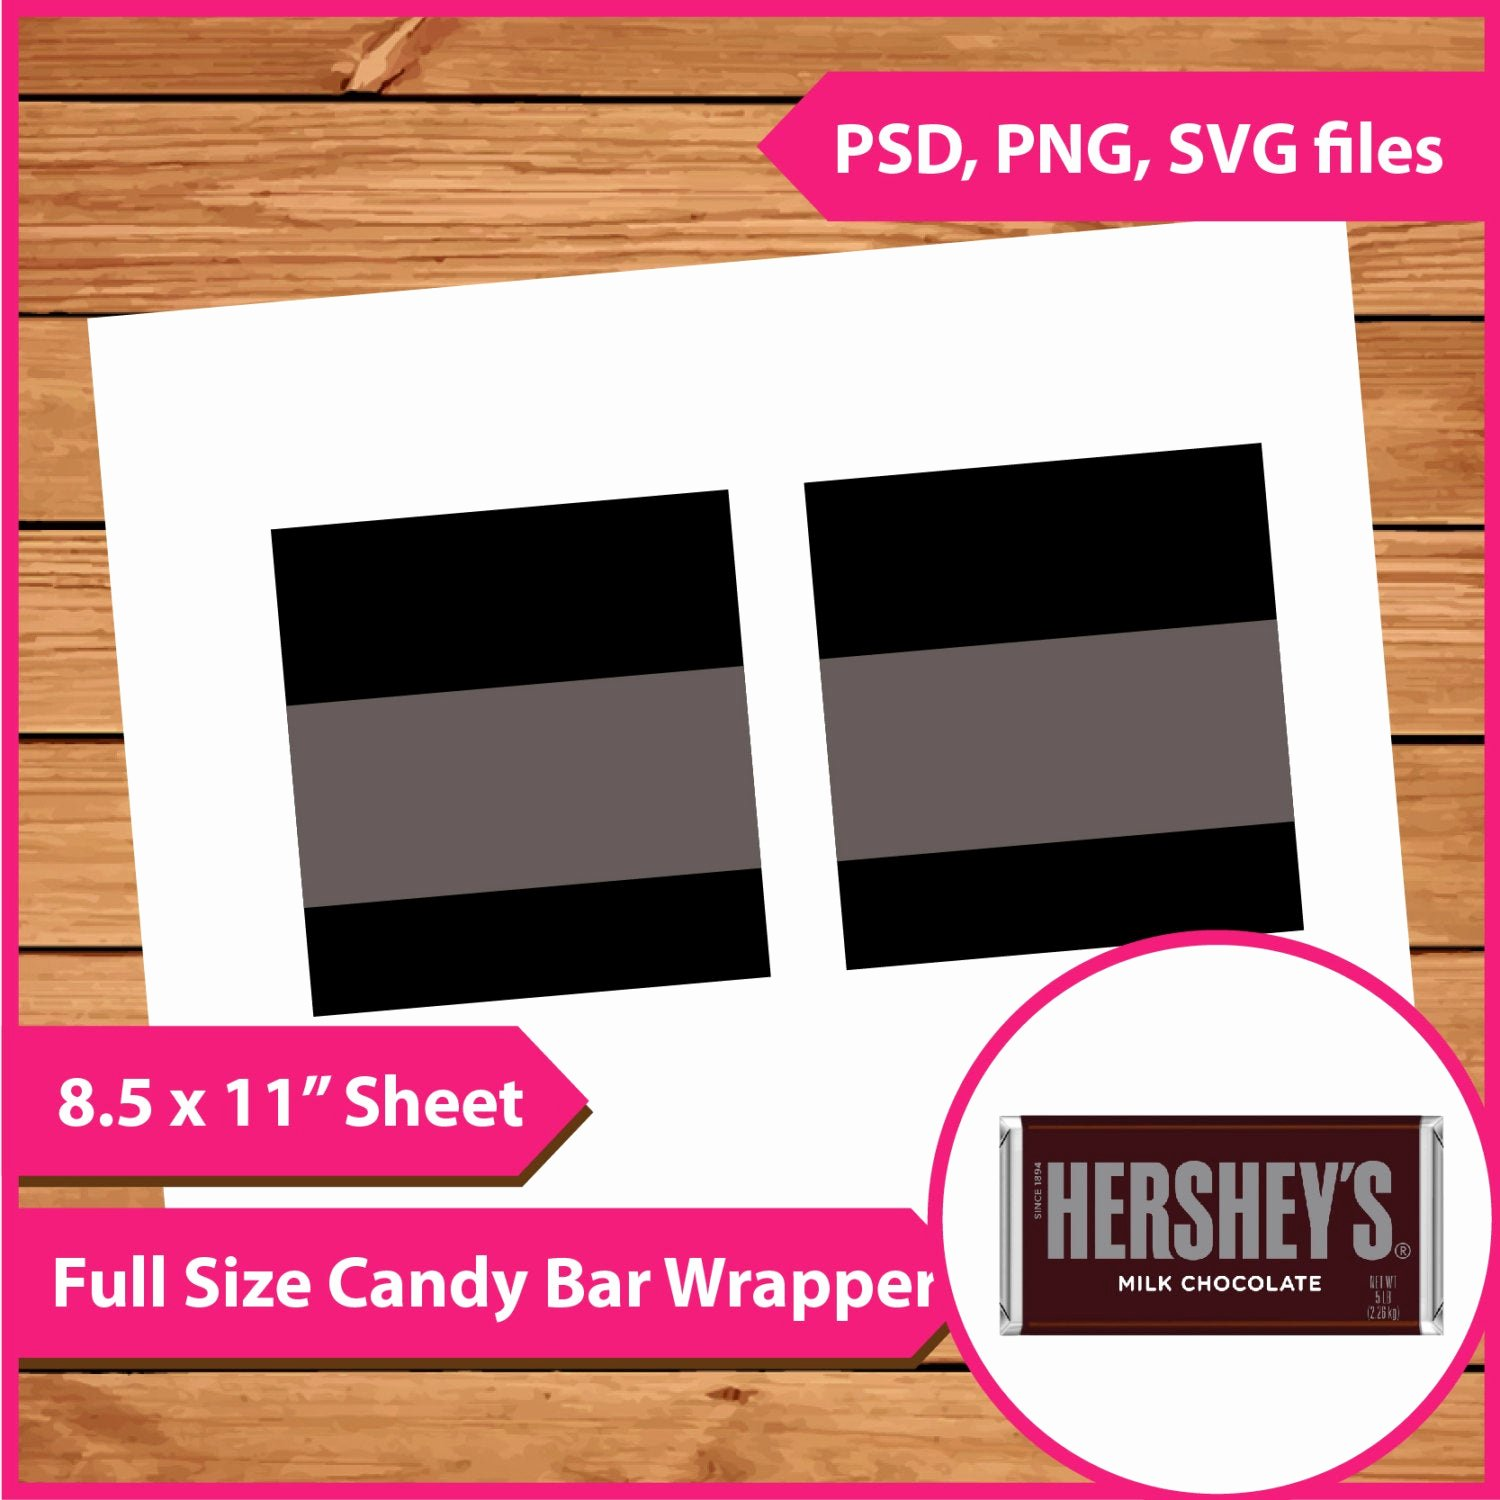 Hershey Bar Wrapper Dimensions Fresh Instant Download Hershey Candy Bar Wrapper Template Psd Png